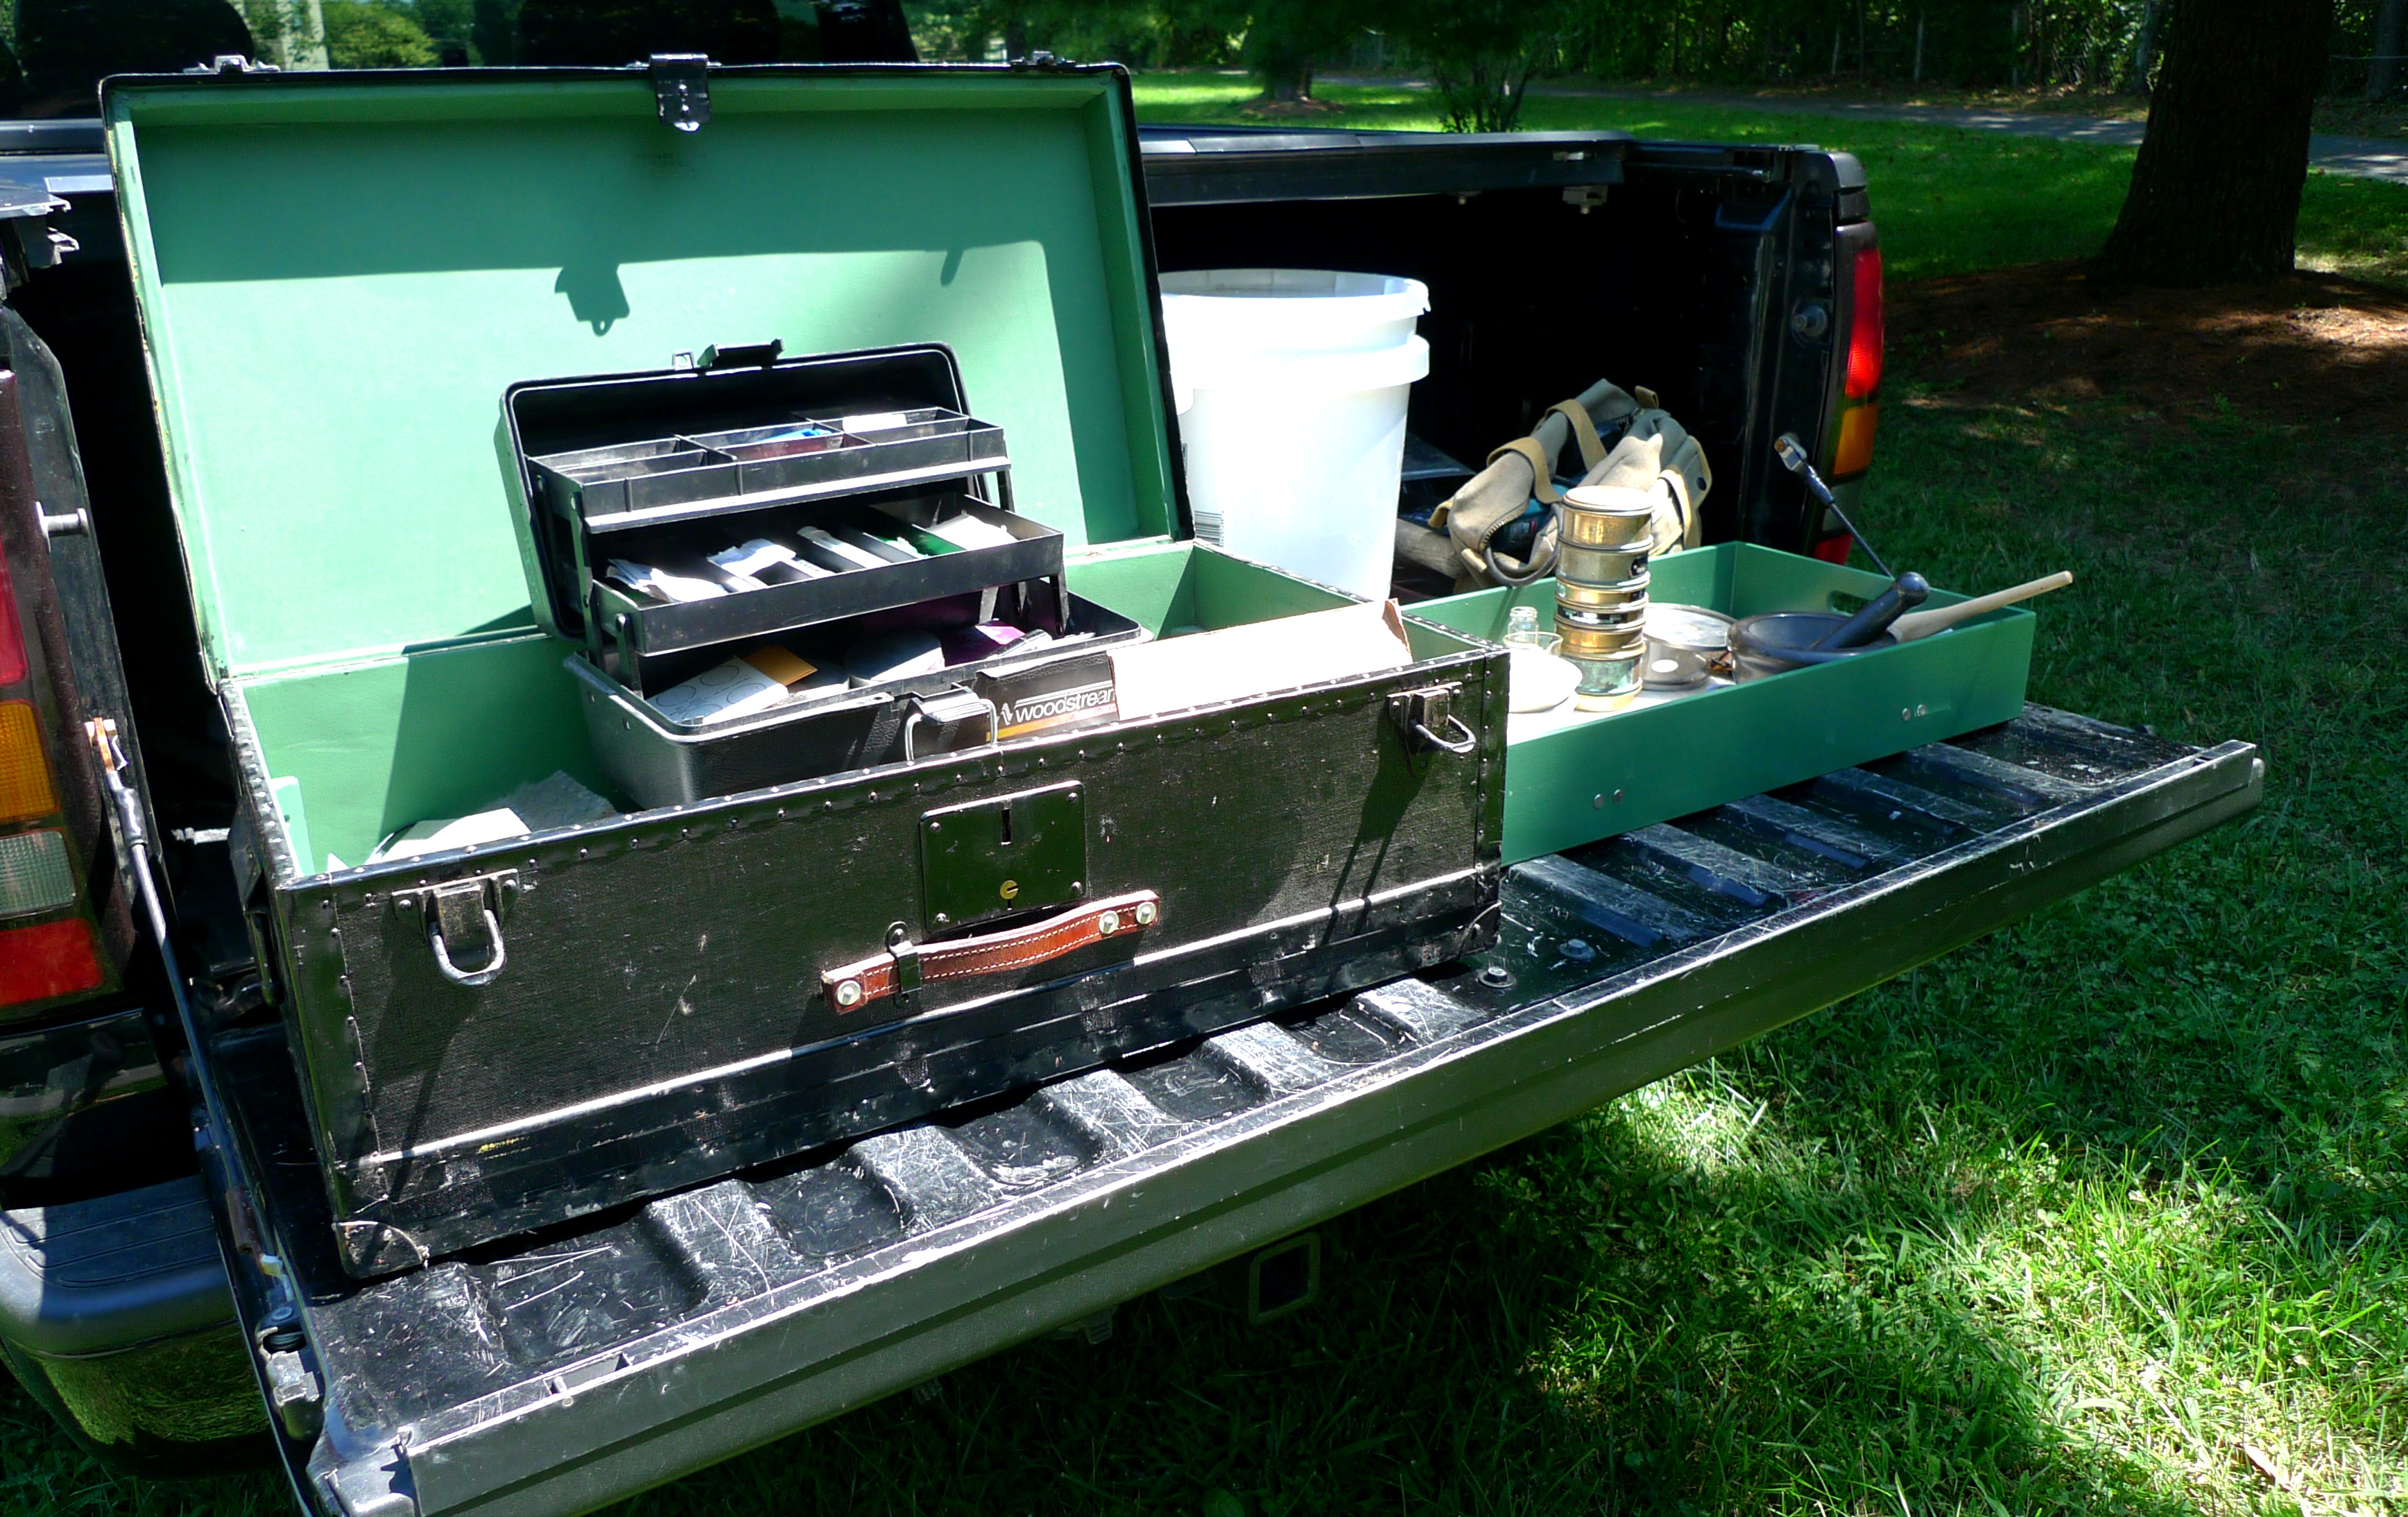 Portable lab trunk assembled on the truck tailgate for go-anywhere sand sieving and analysis.